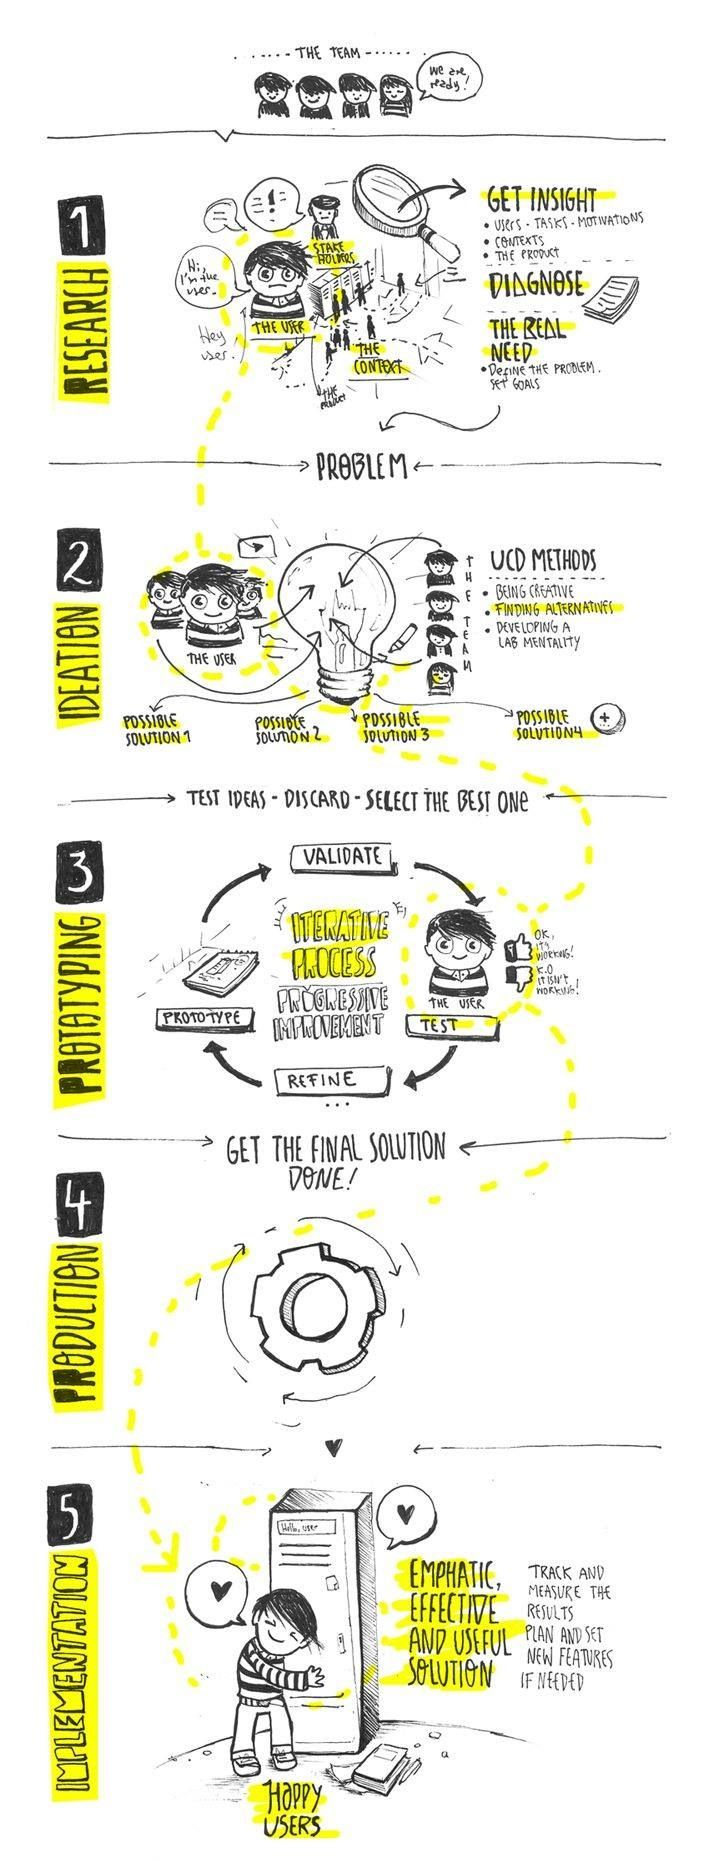 Visual thinking - Happy users. If you like UX, design, or design thinking, check out theuxblog.com